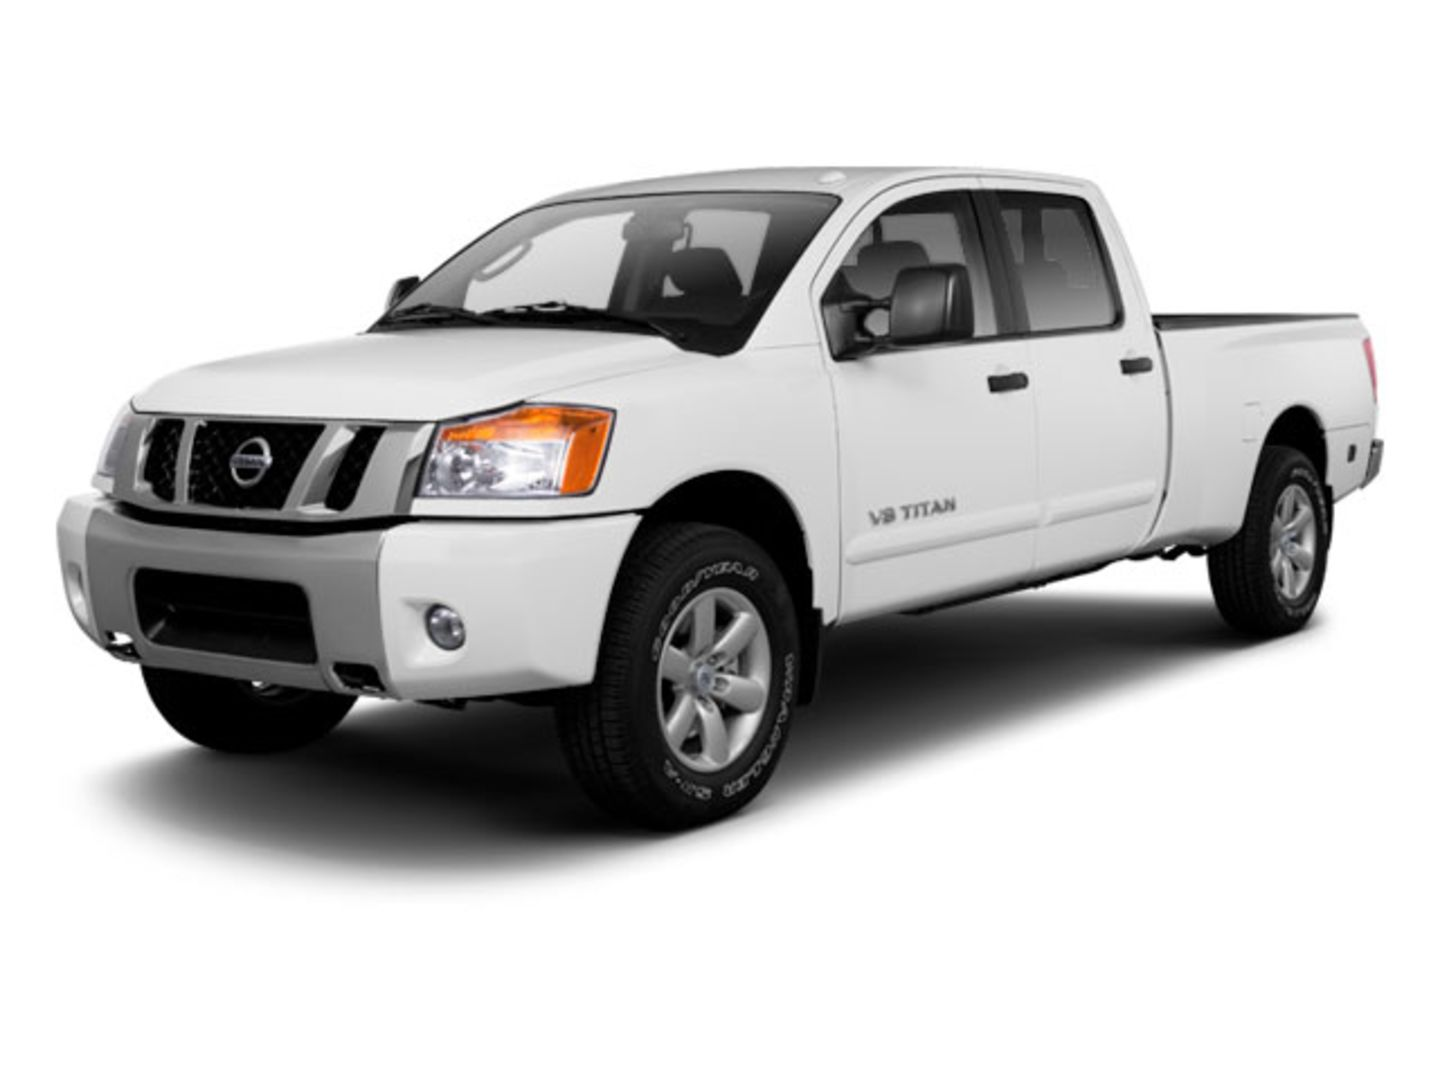 2010 Nissan Titan LE for sale in Edmonton, Alberta